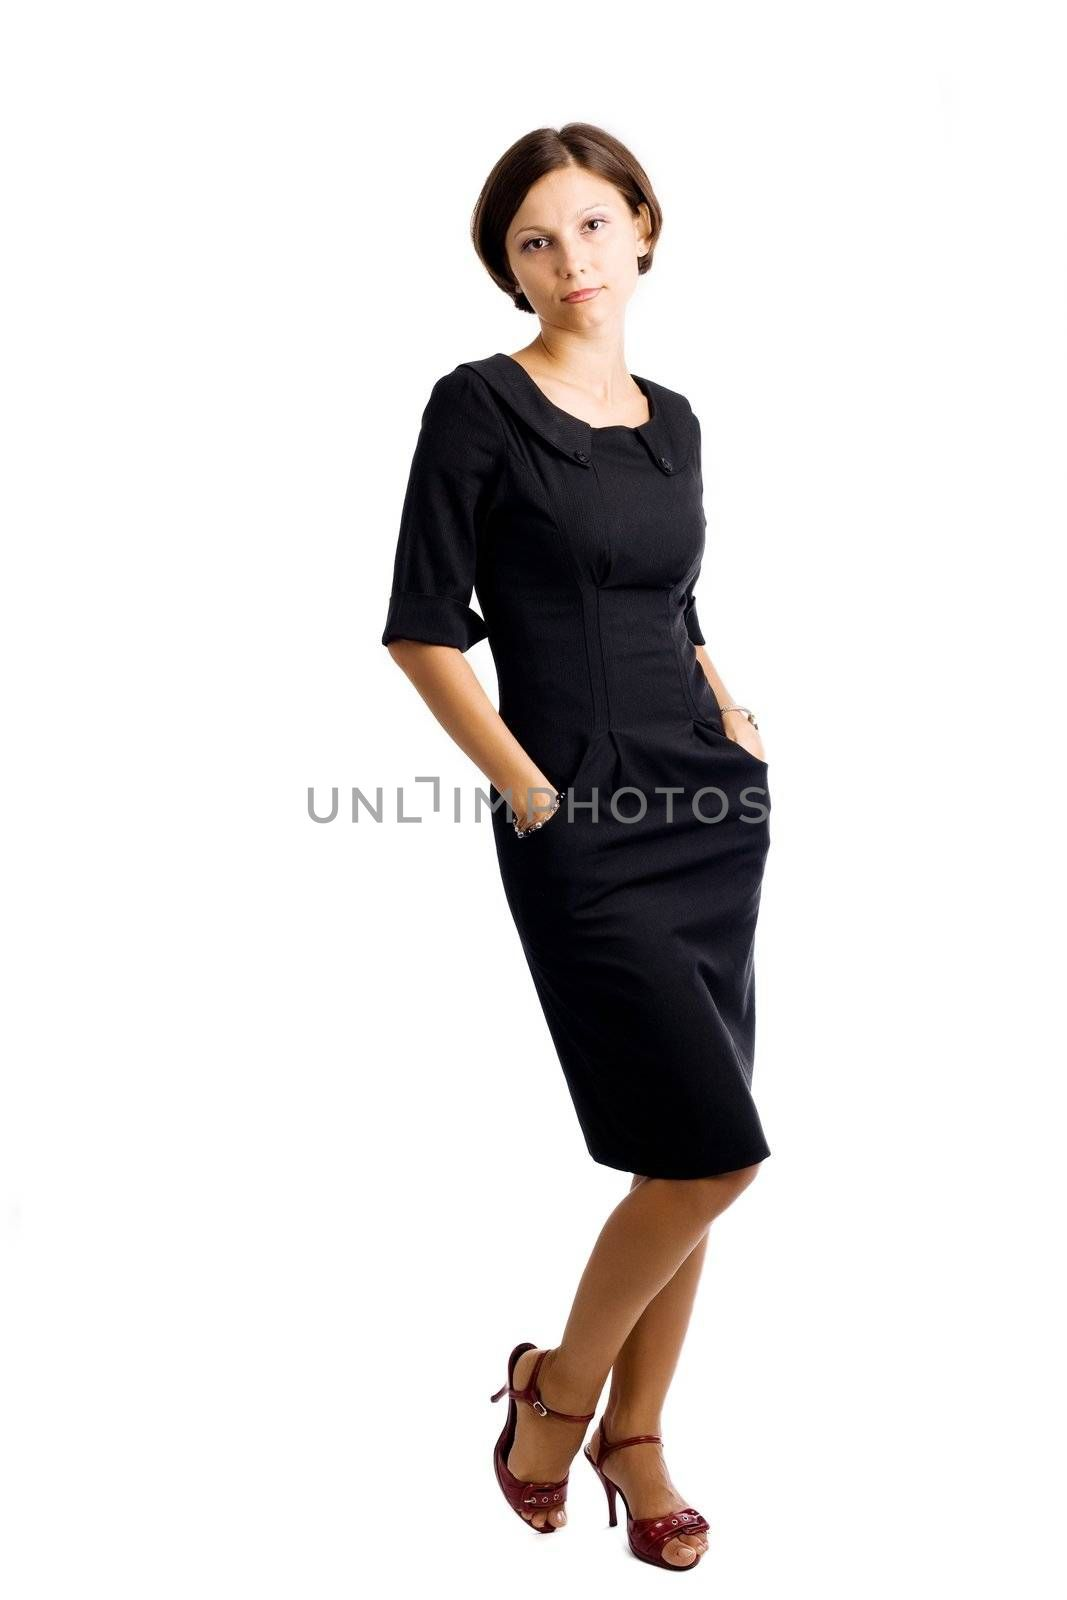 An image of a portrait of a woman in black dress